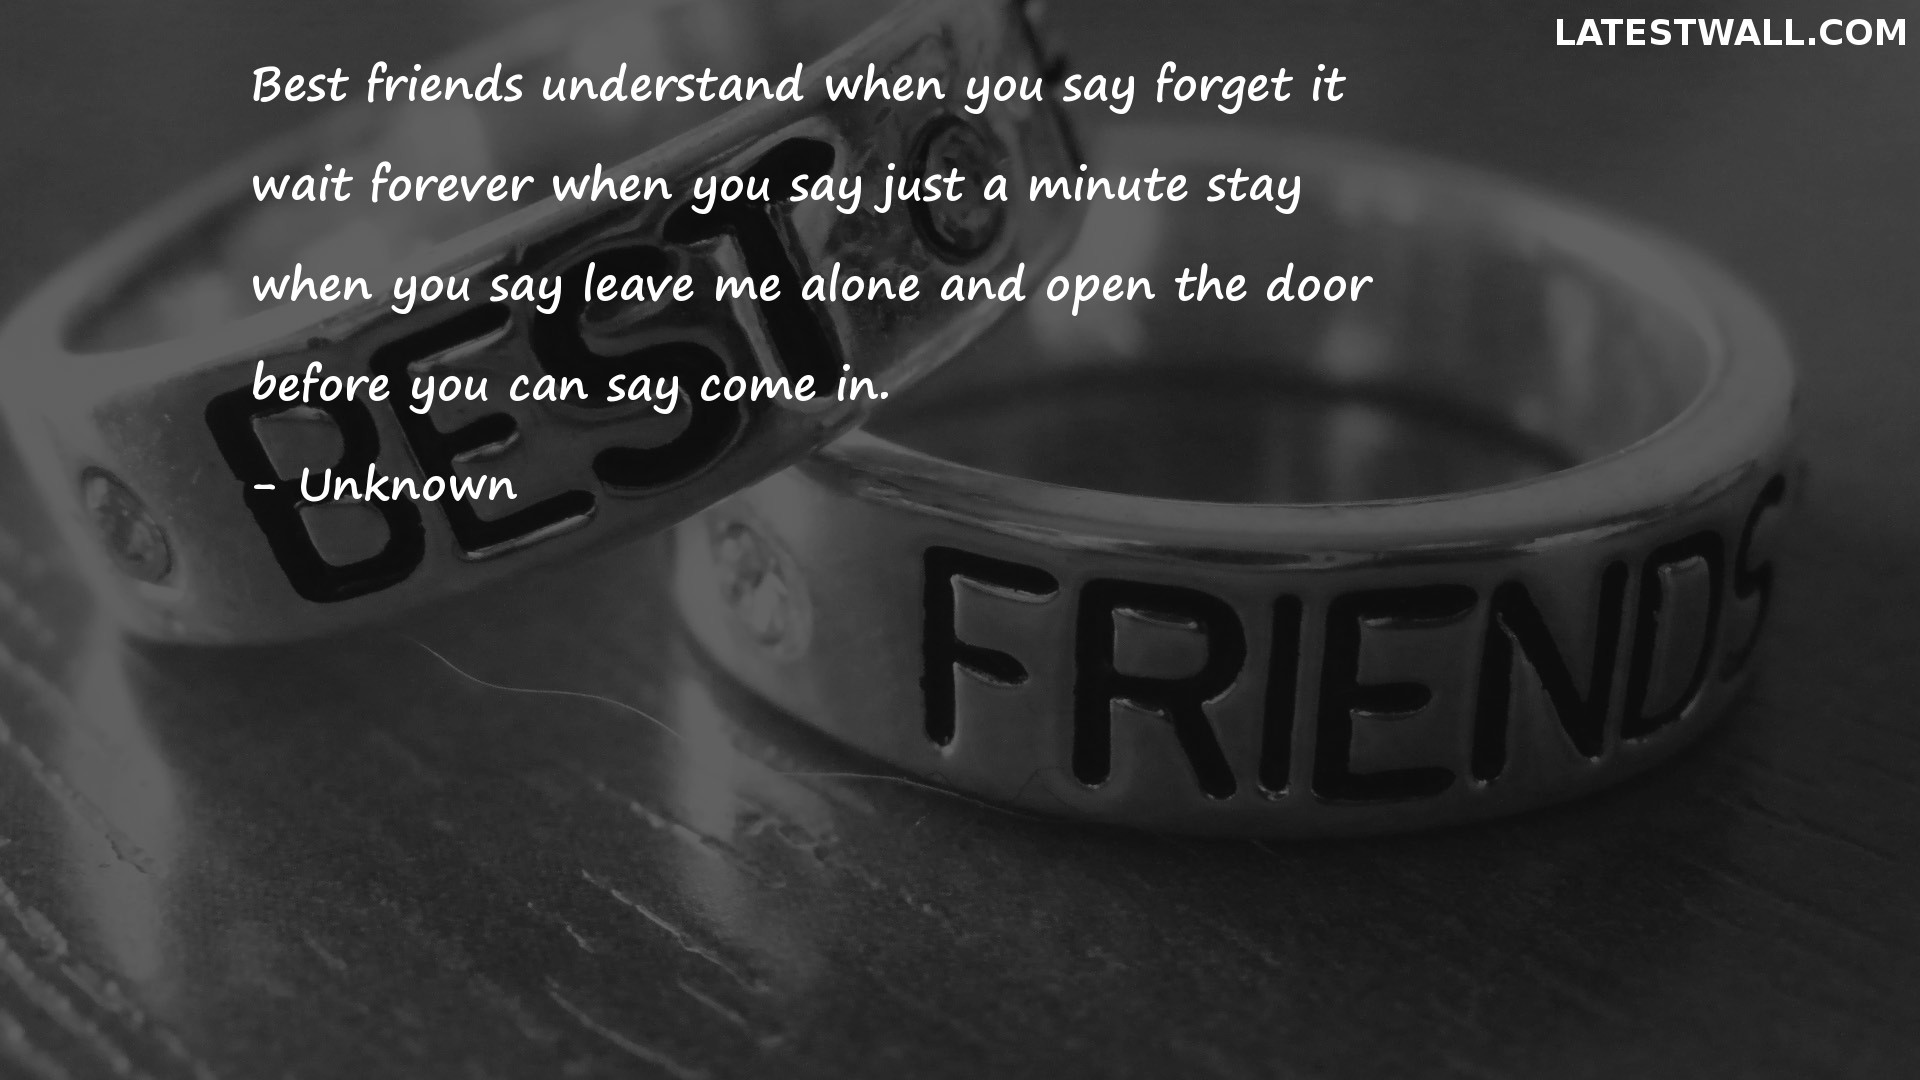 Best friends understand when you say forget it